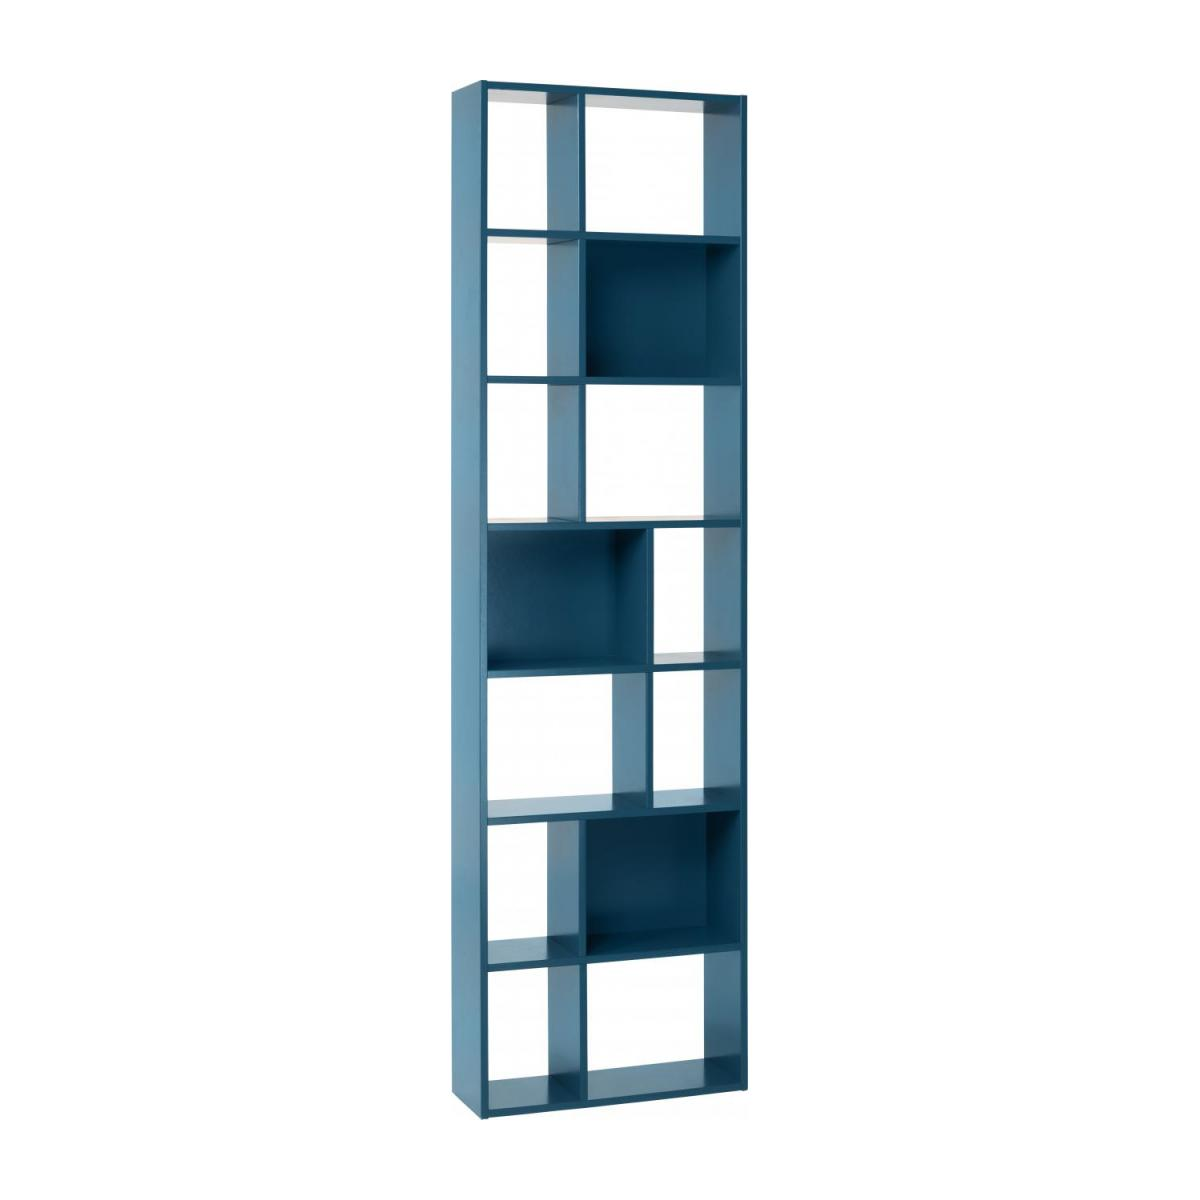 Rangements Cd Dvd Etagere Range Cd Meuble Cd Dvd Tour En Style Etagere Range Cd Dvd